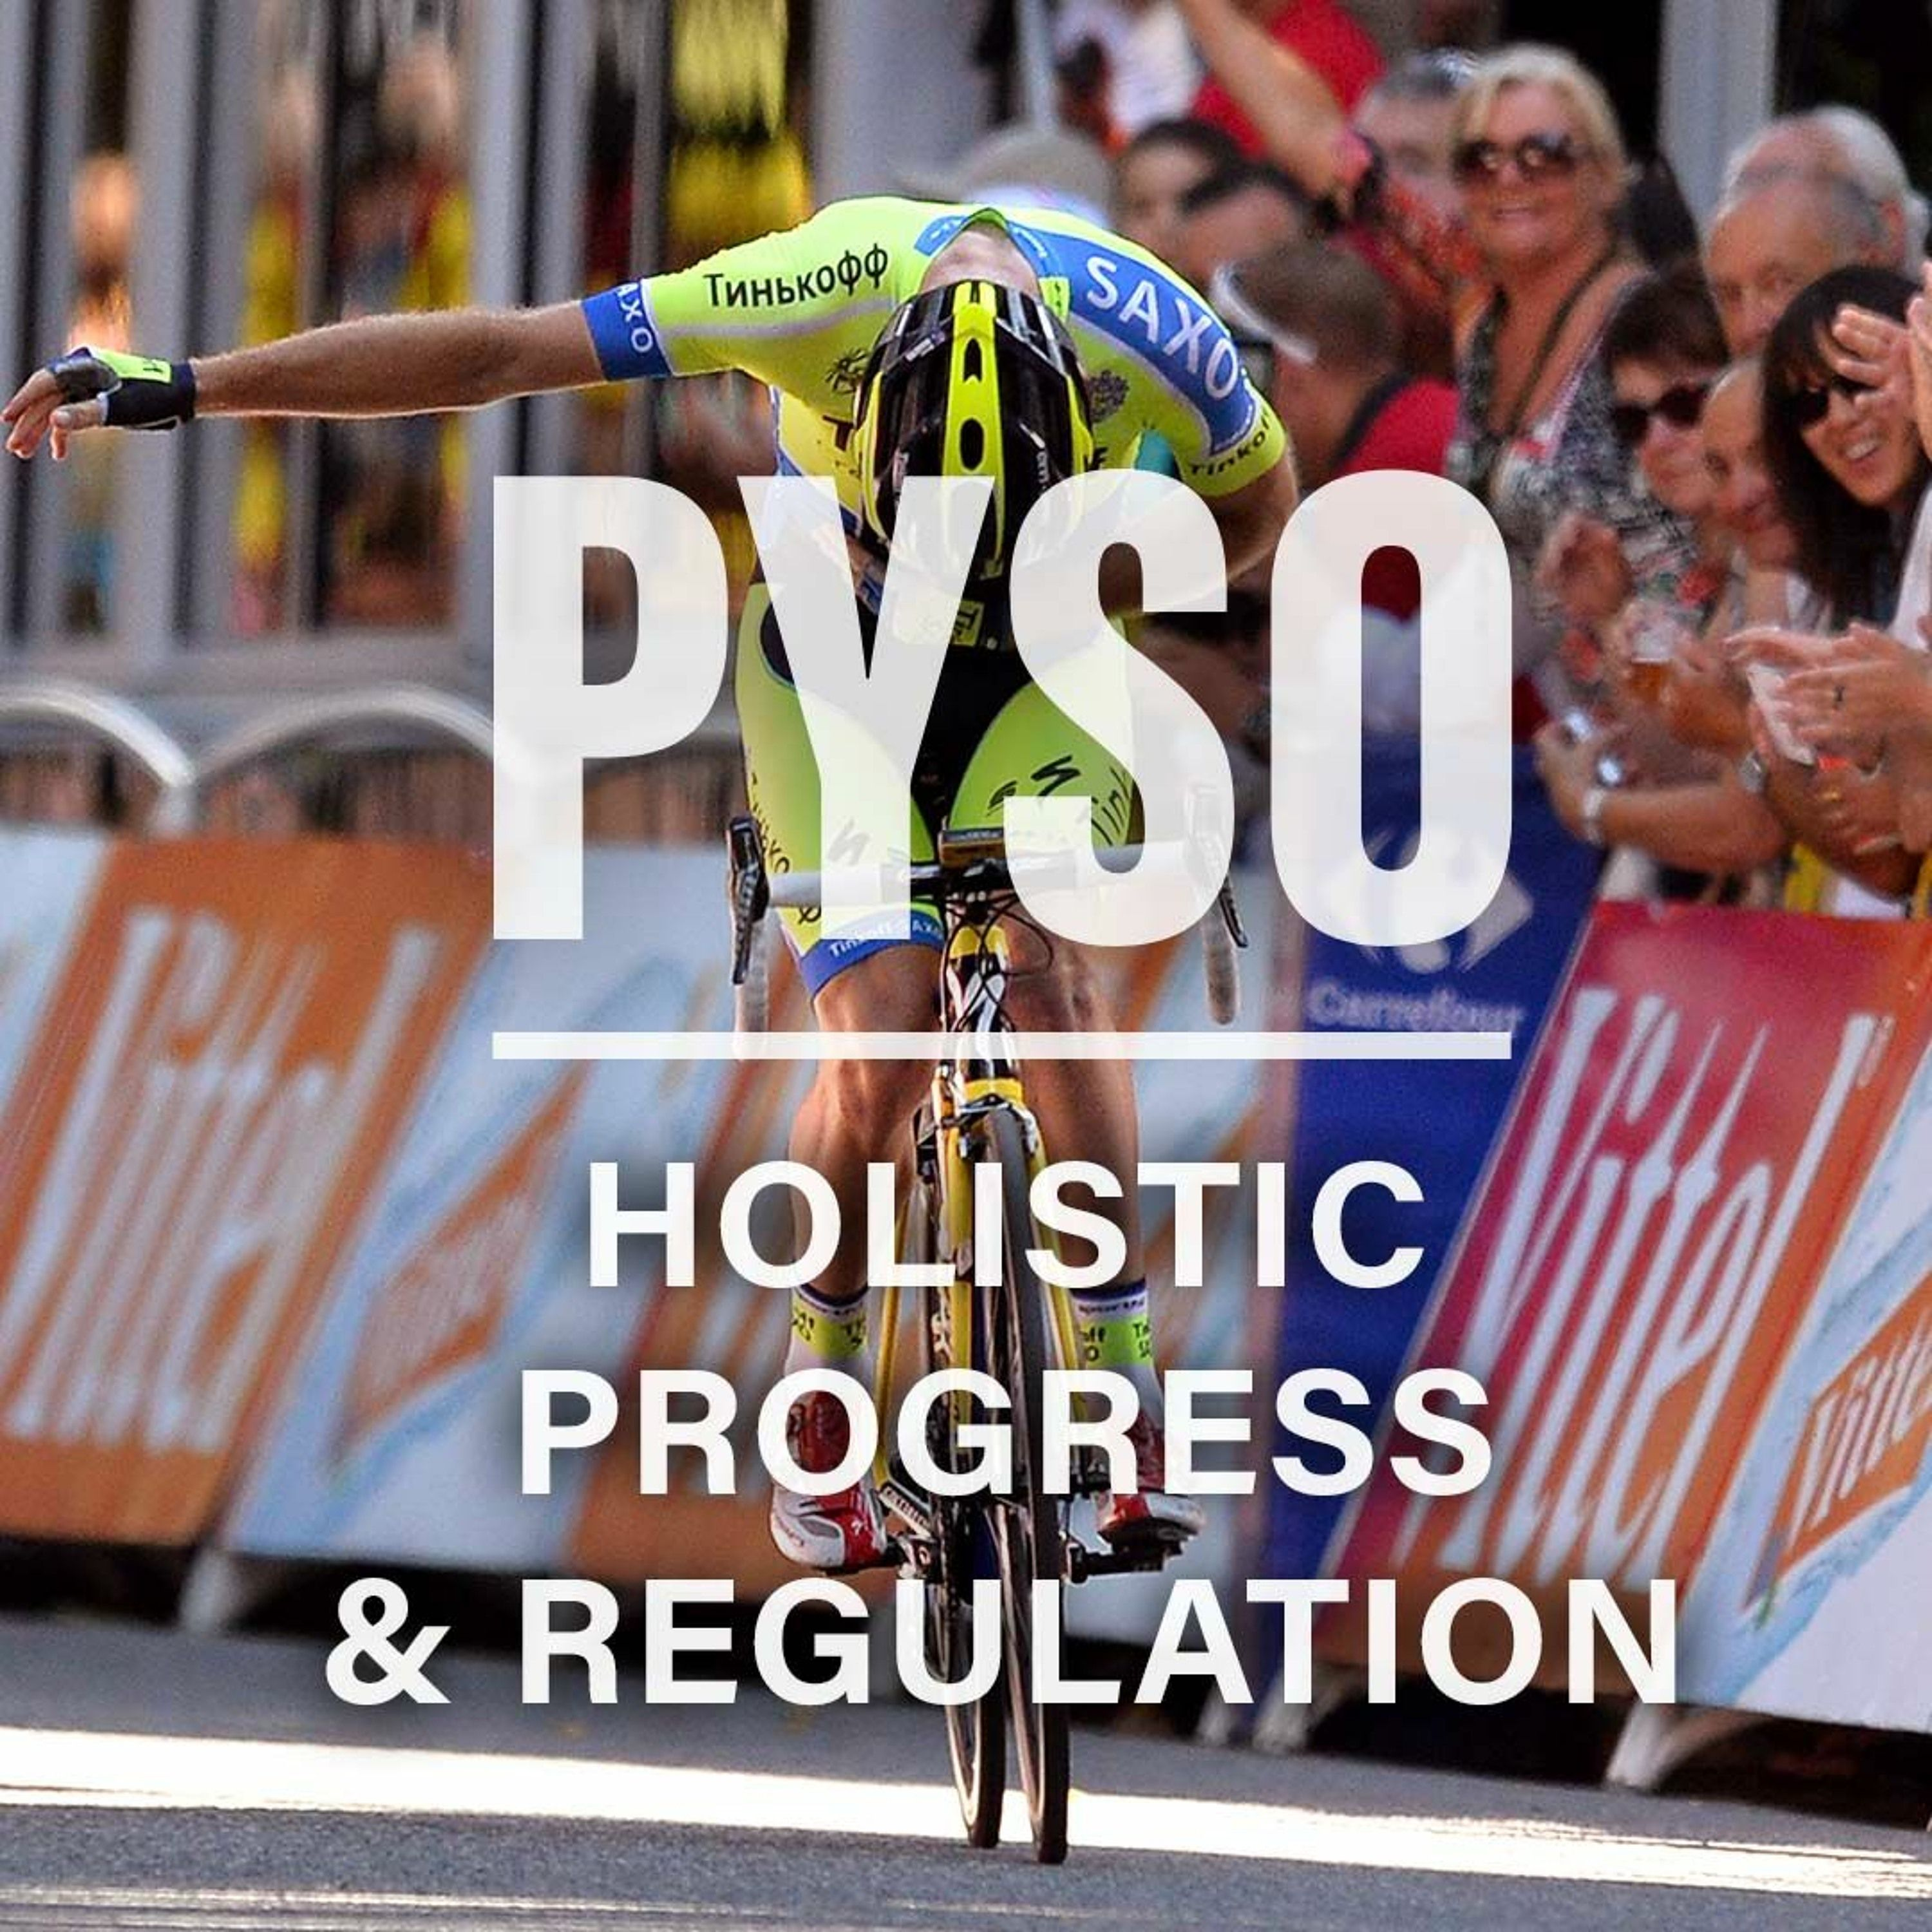 PYSO, ep. 81: UCI innovation manager Michael Rogers on progress and regulation